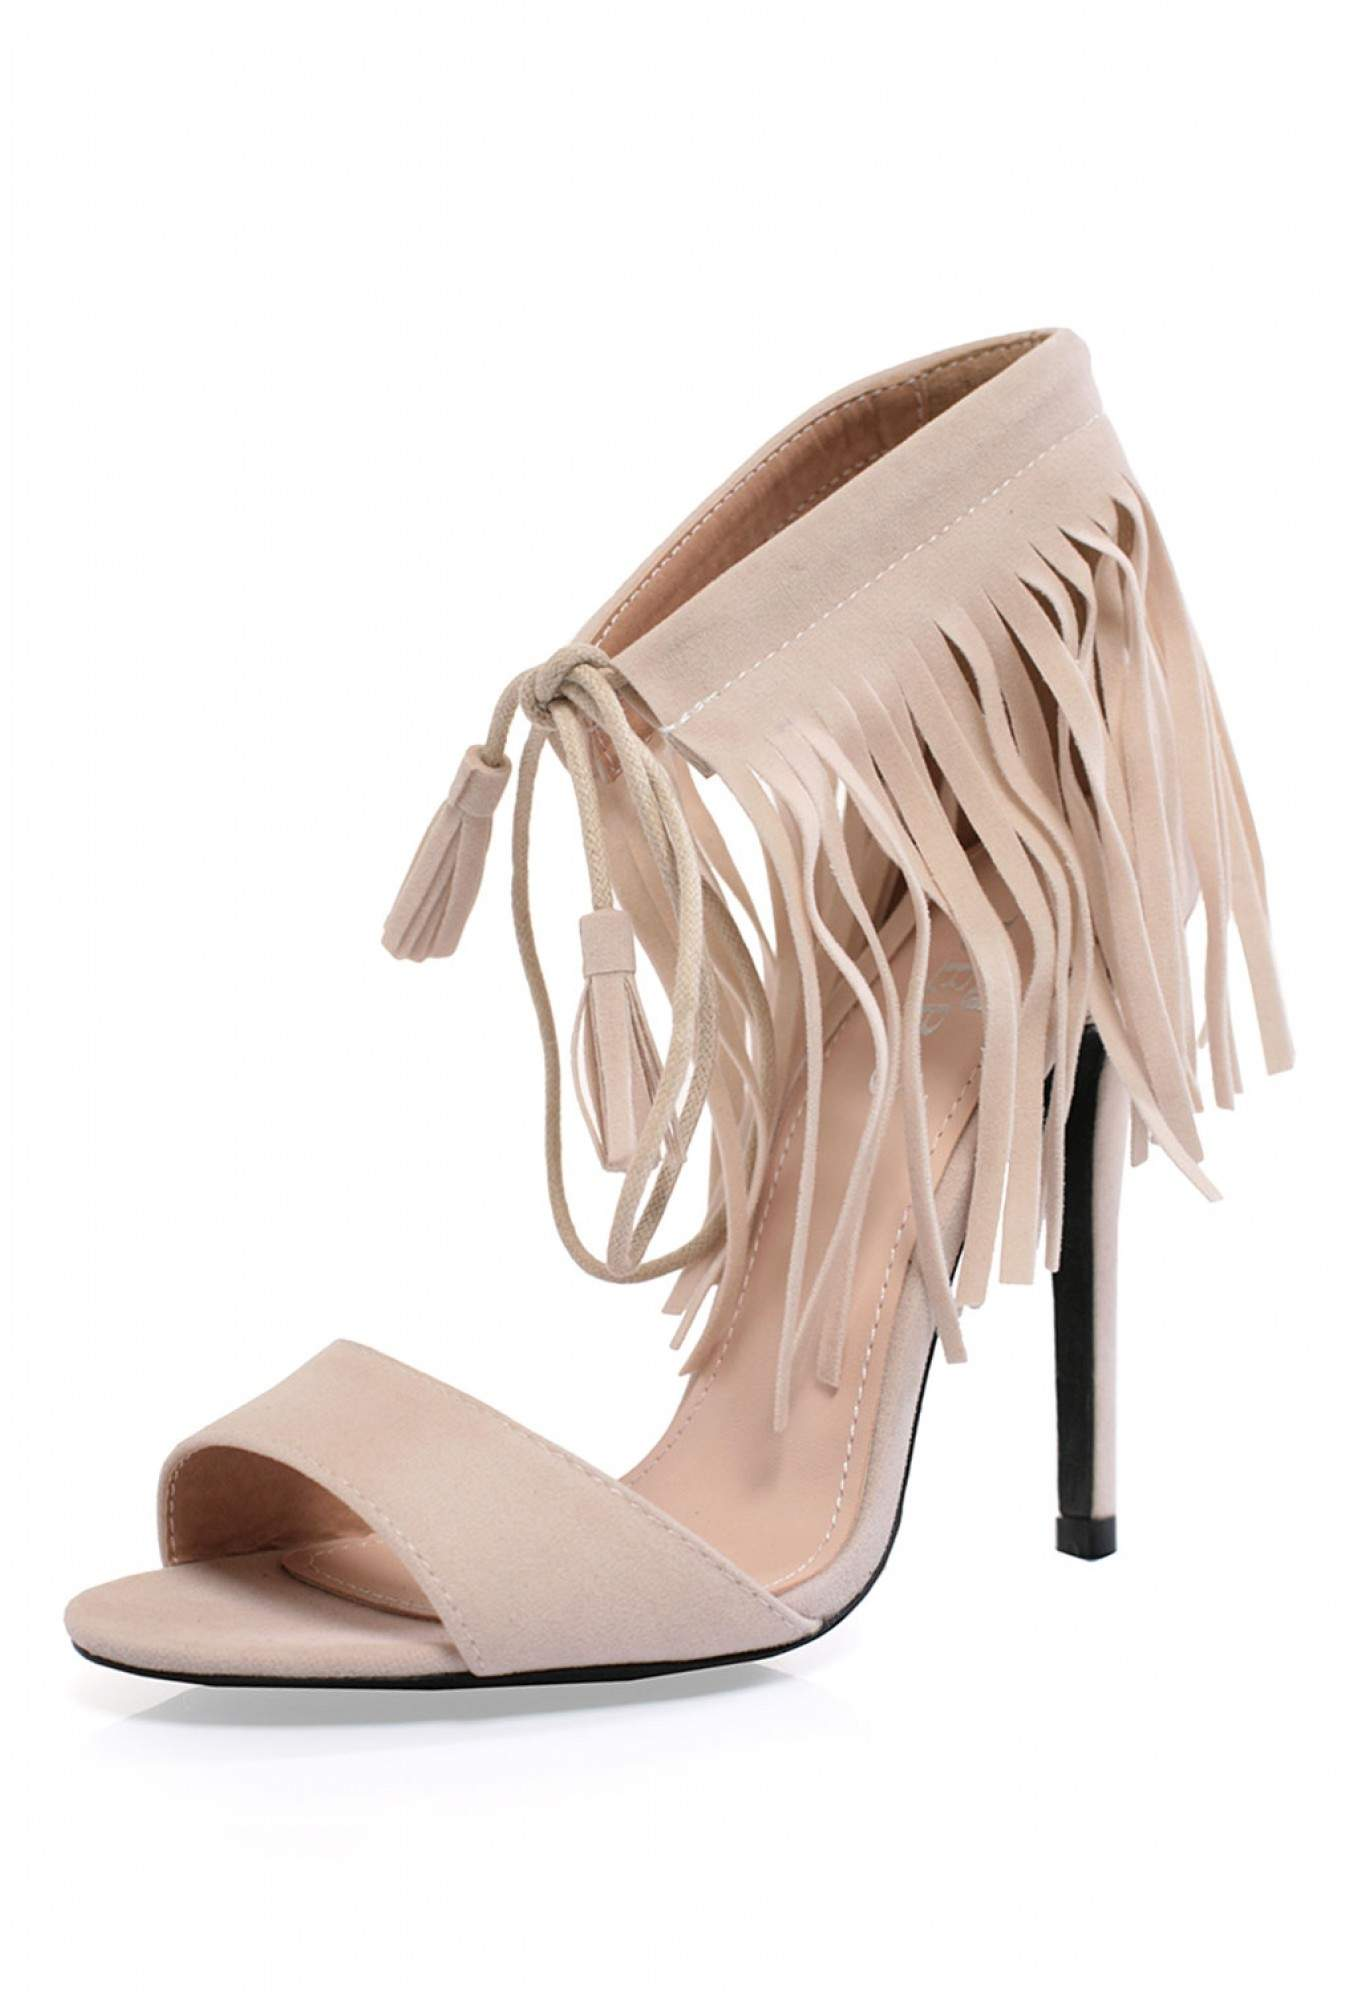 37964e3b5d Indigo Footwear Noella Fringe Heeled Sandals in Beige | iCLOTHING